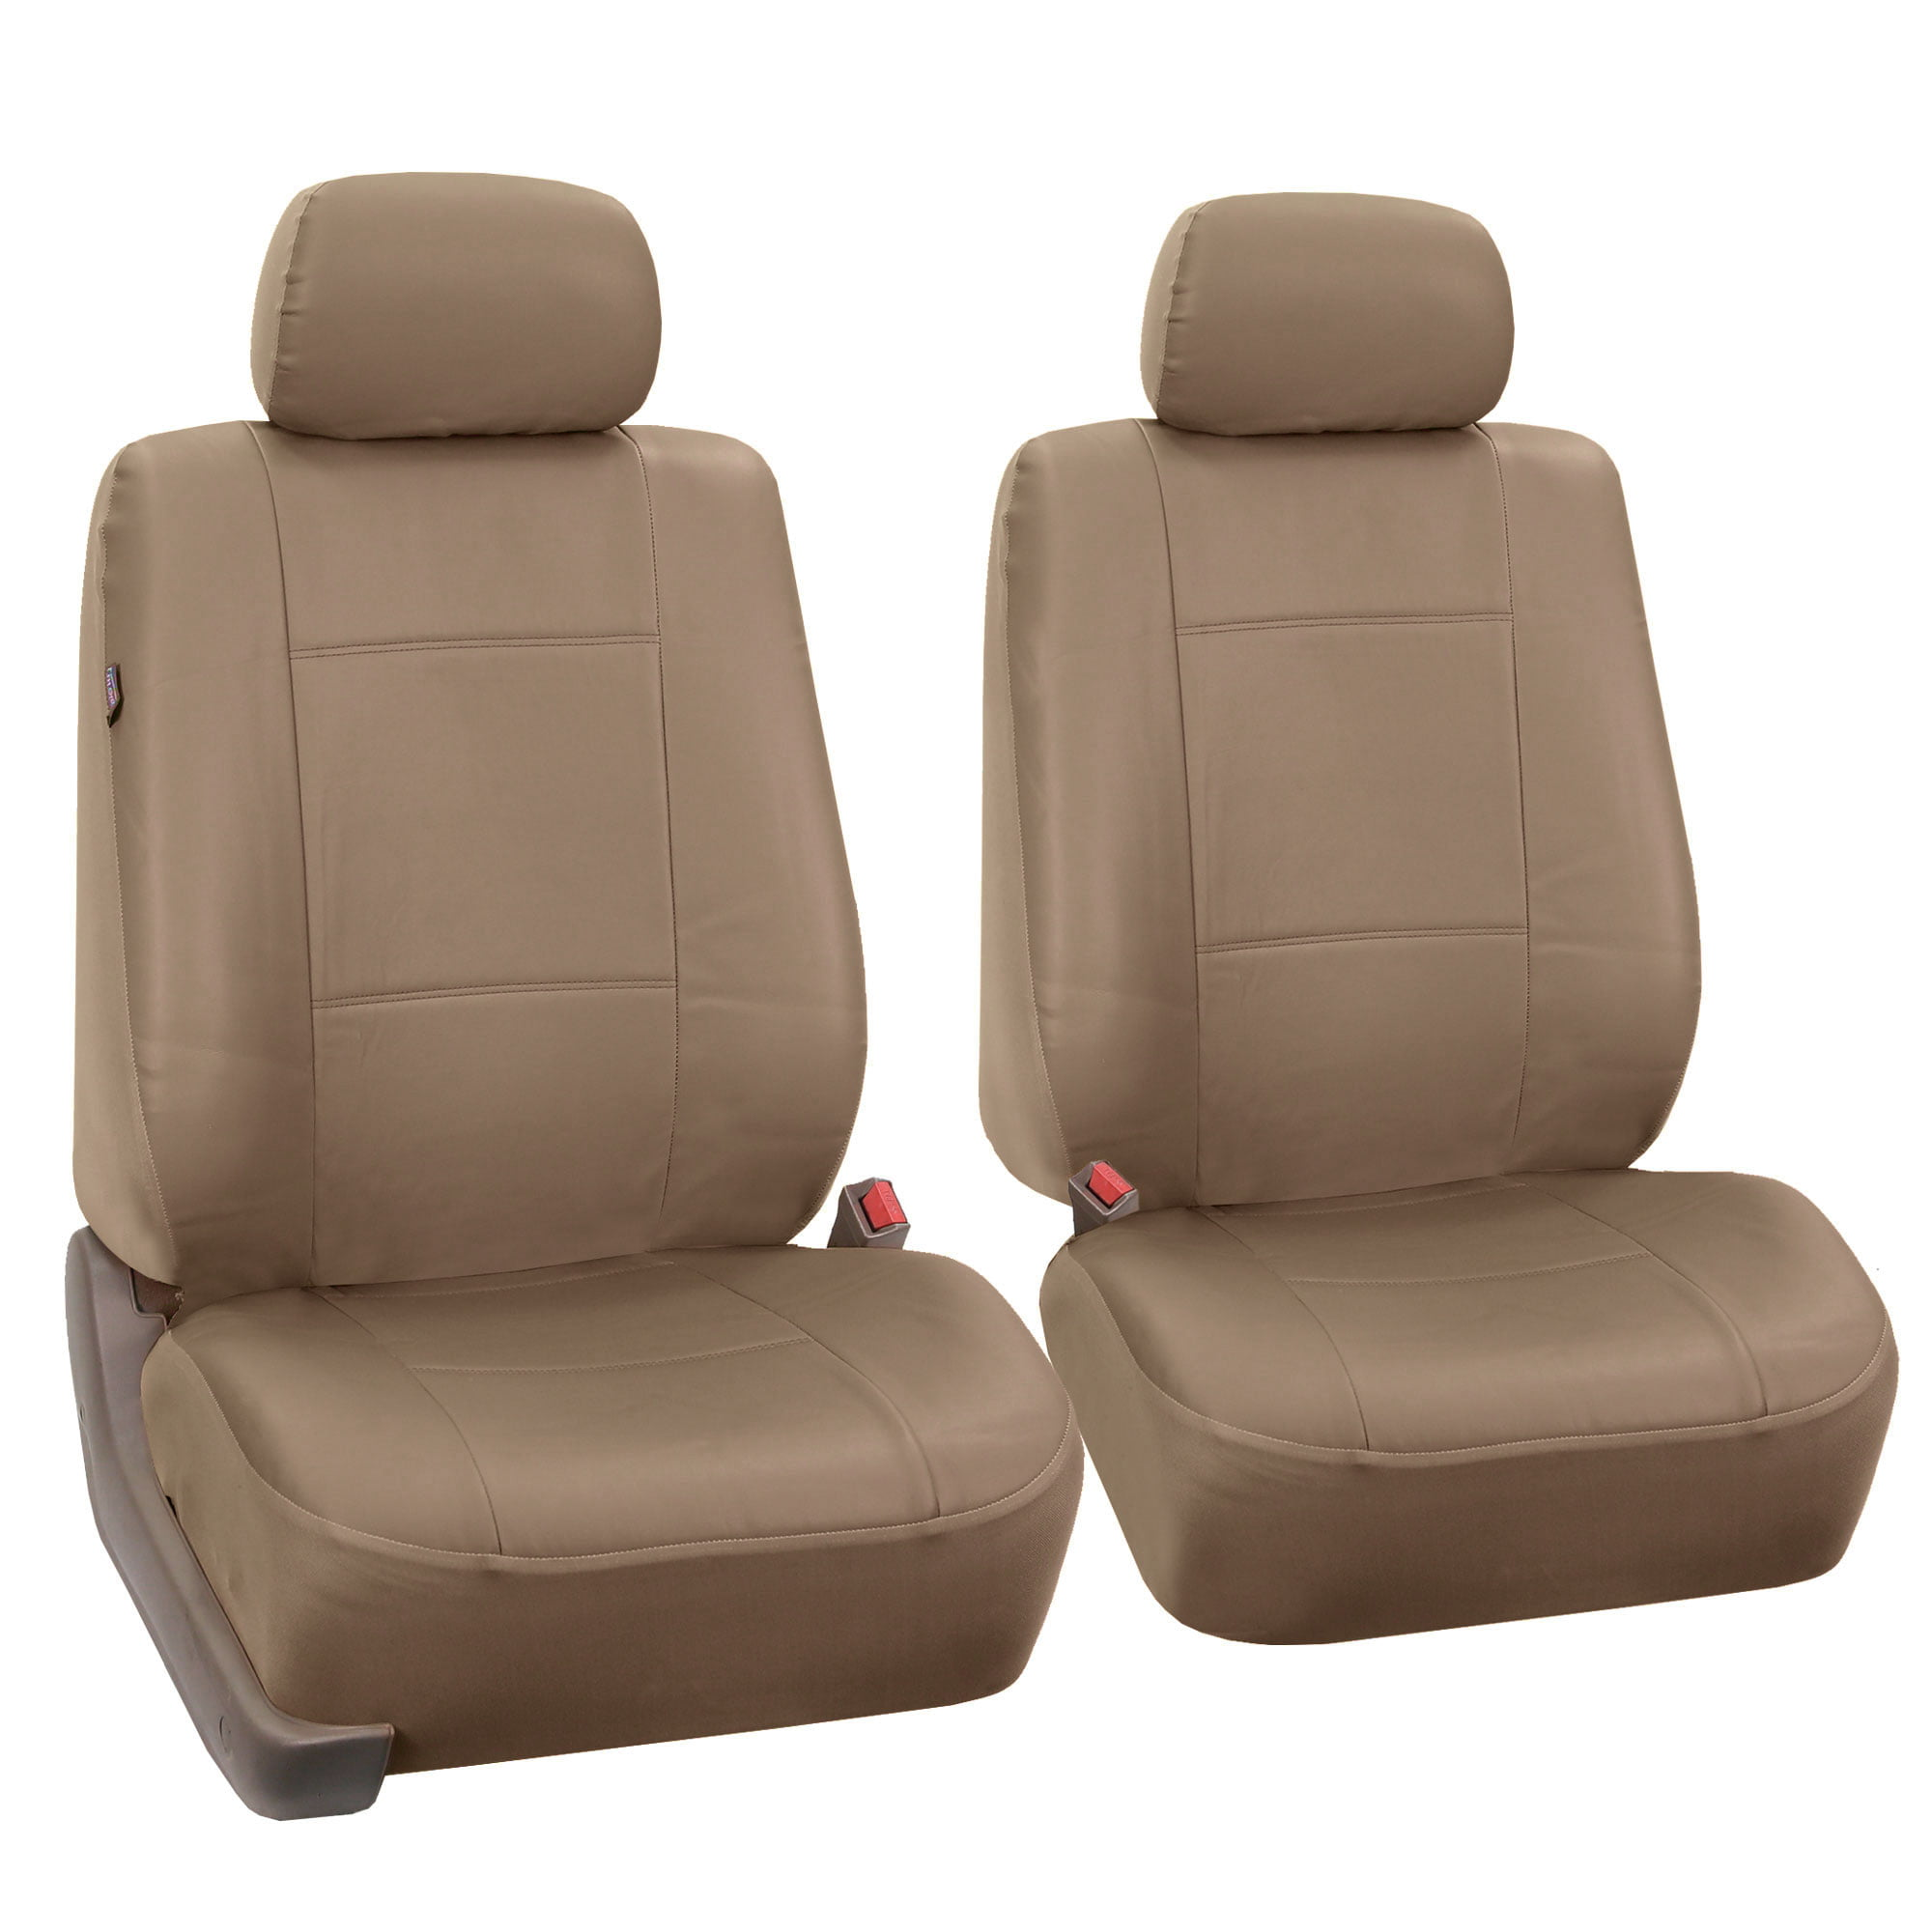 Scottsdale Thick Car Seat Covers Front /& Rear Set for Car SUVs Van Truck 9pc